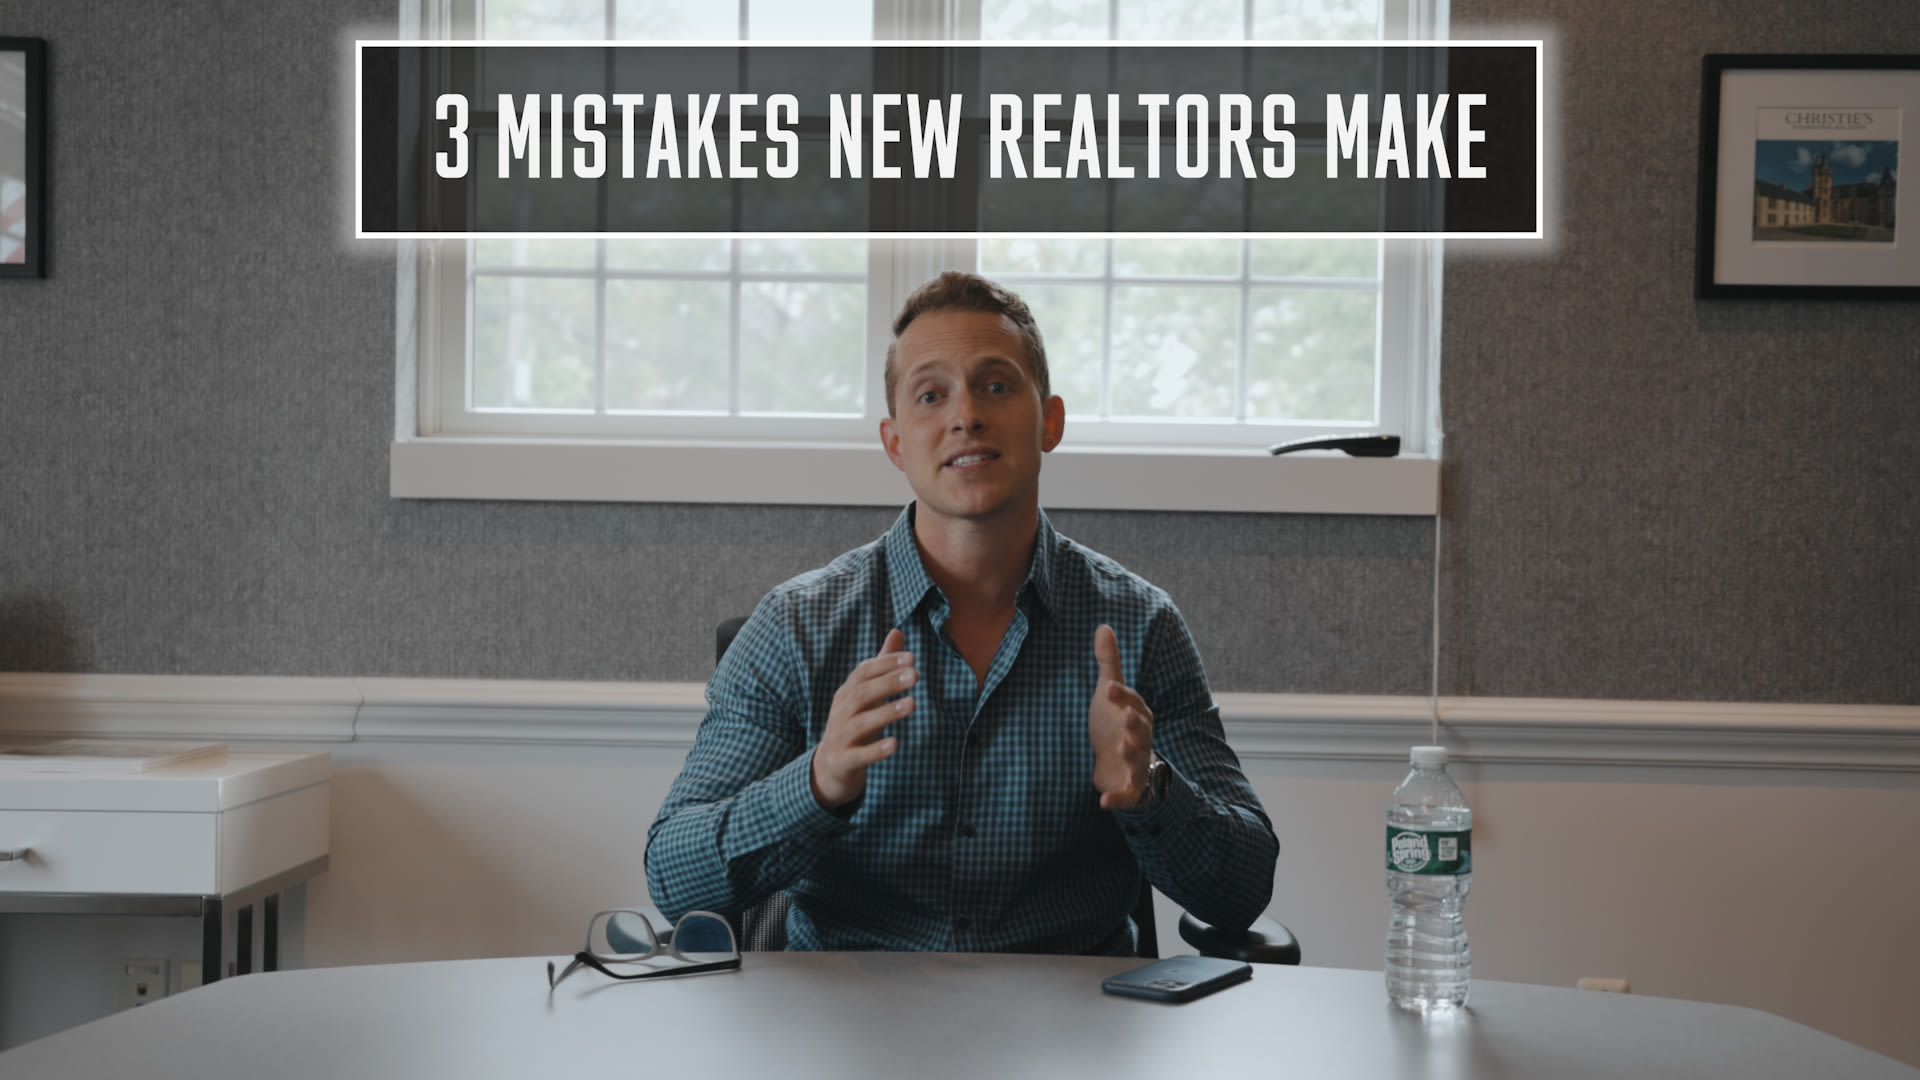 3 Mistakes New Realtors Make - Vlog #021 video preview